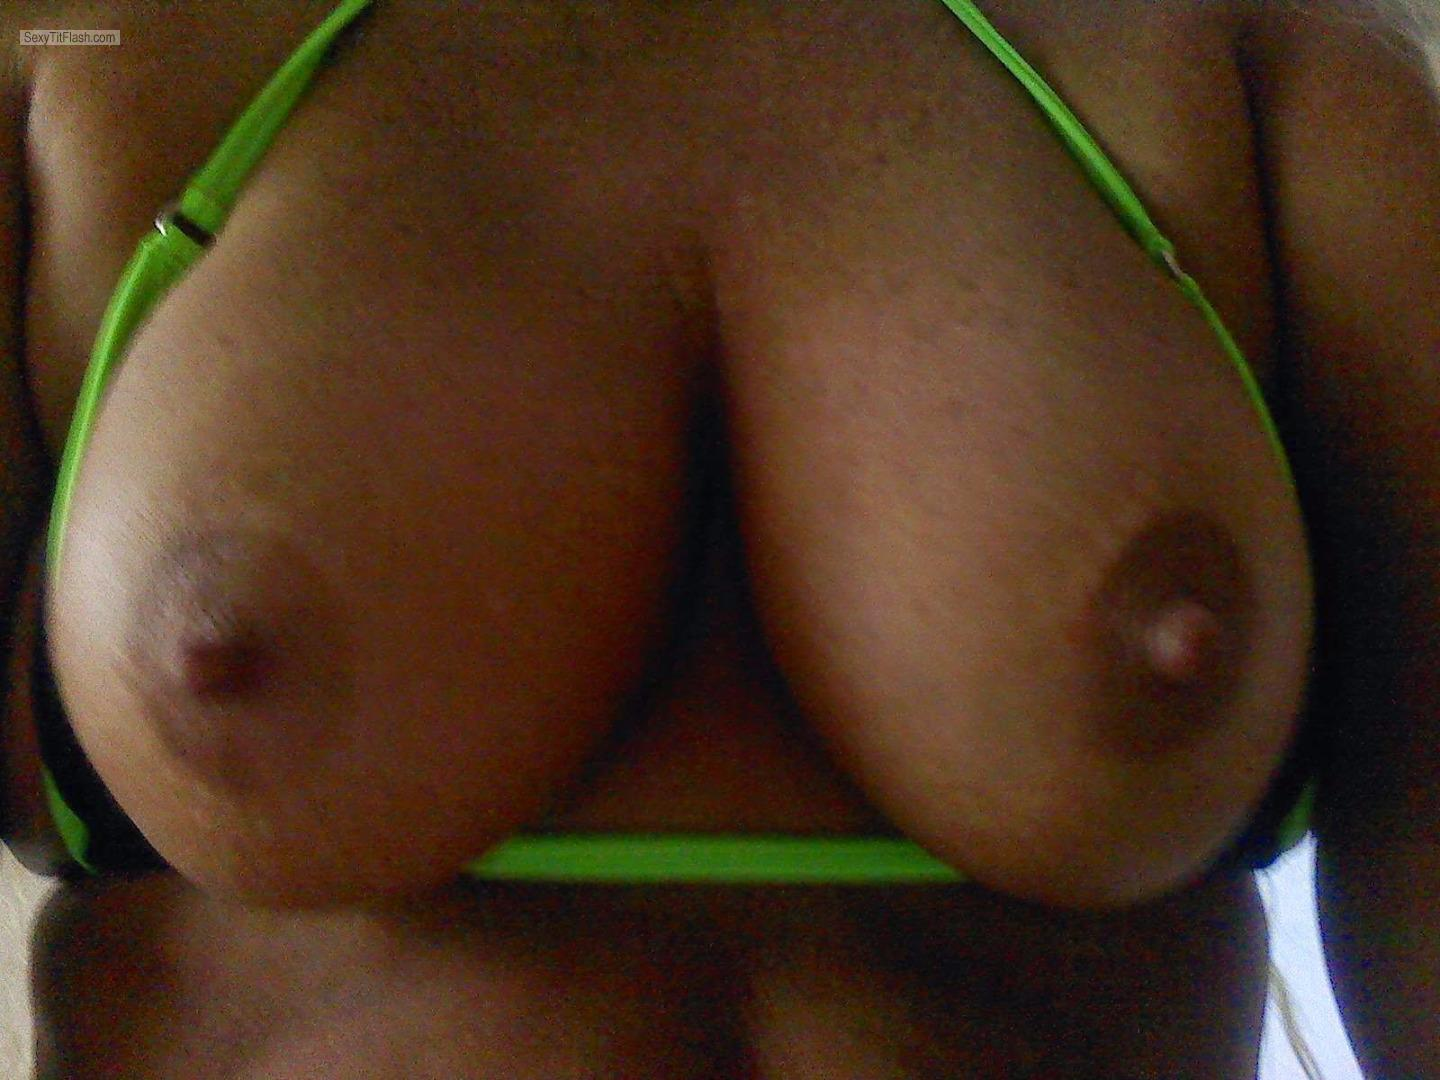 Big Tits Of My Wife Sexy Milf